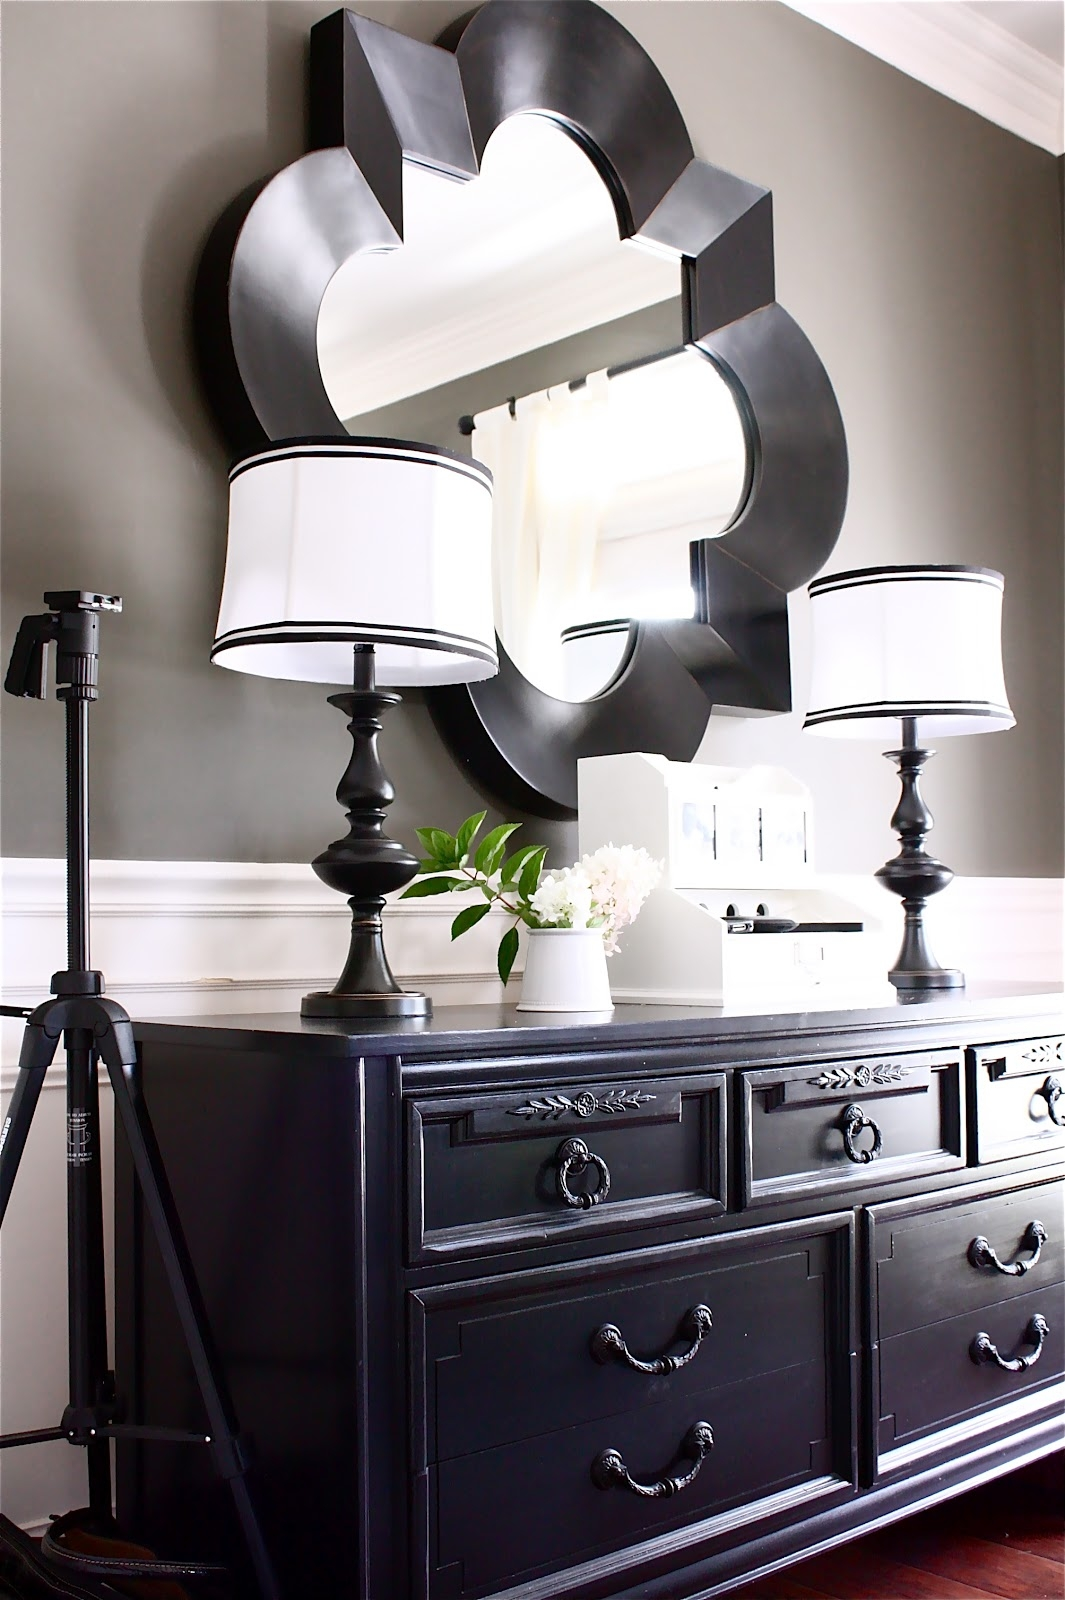 Odd Shaped Wall Mirrors Home Regarding Odd Shaped Mirrors (Image 8 of 15)